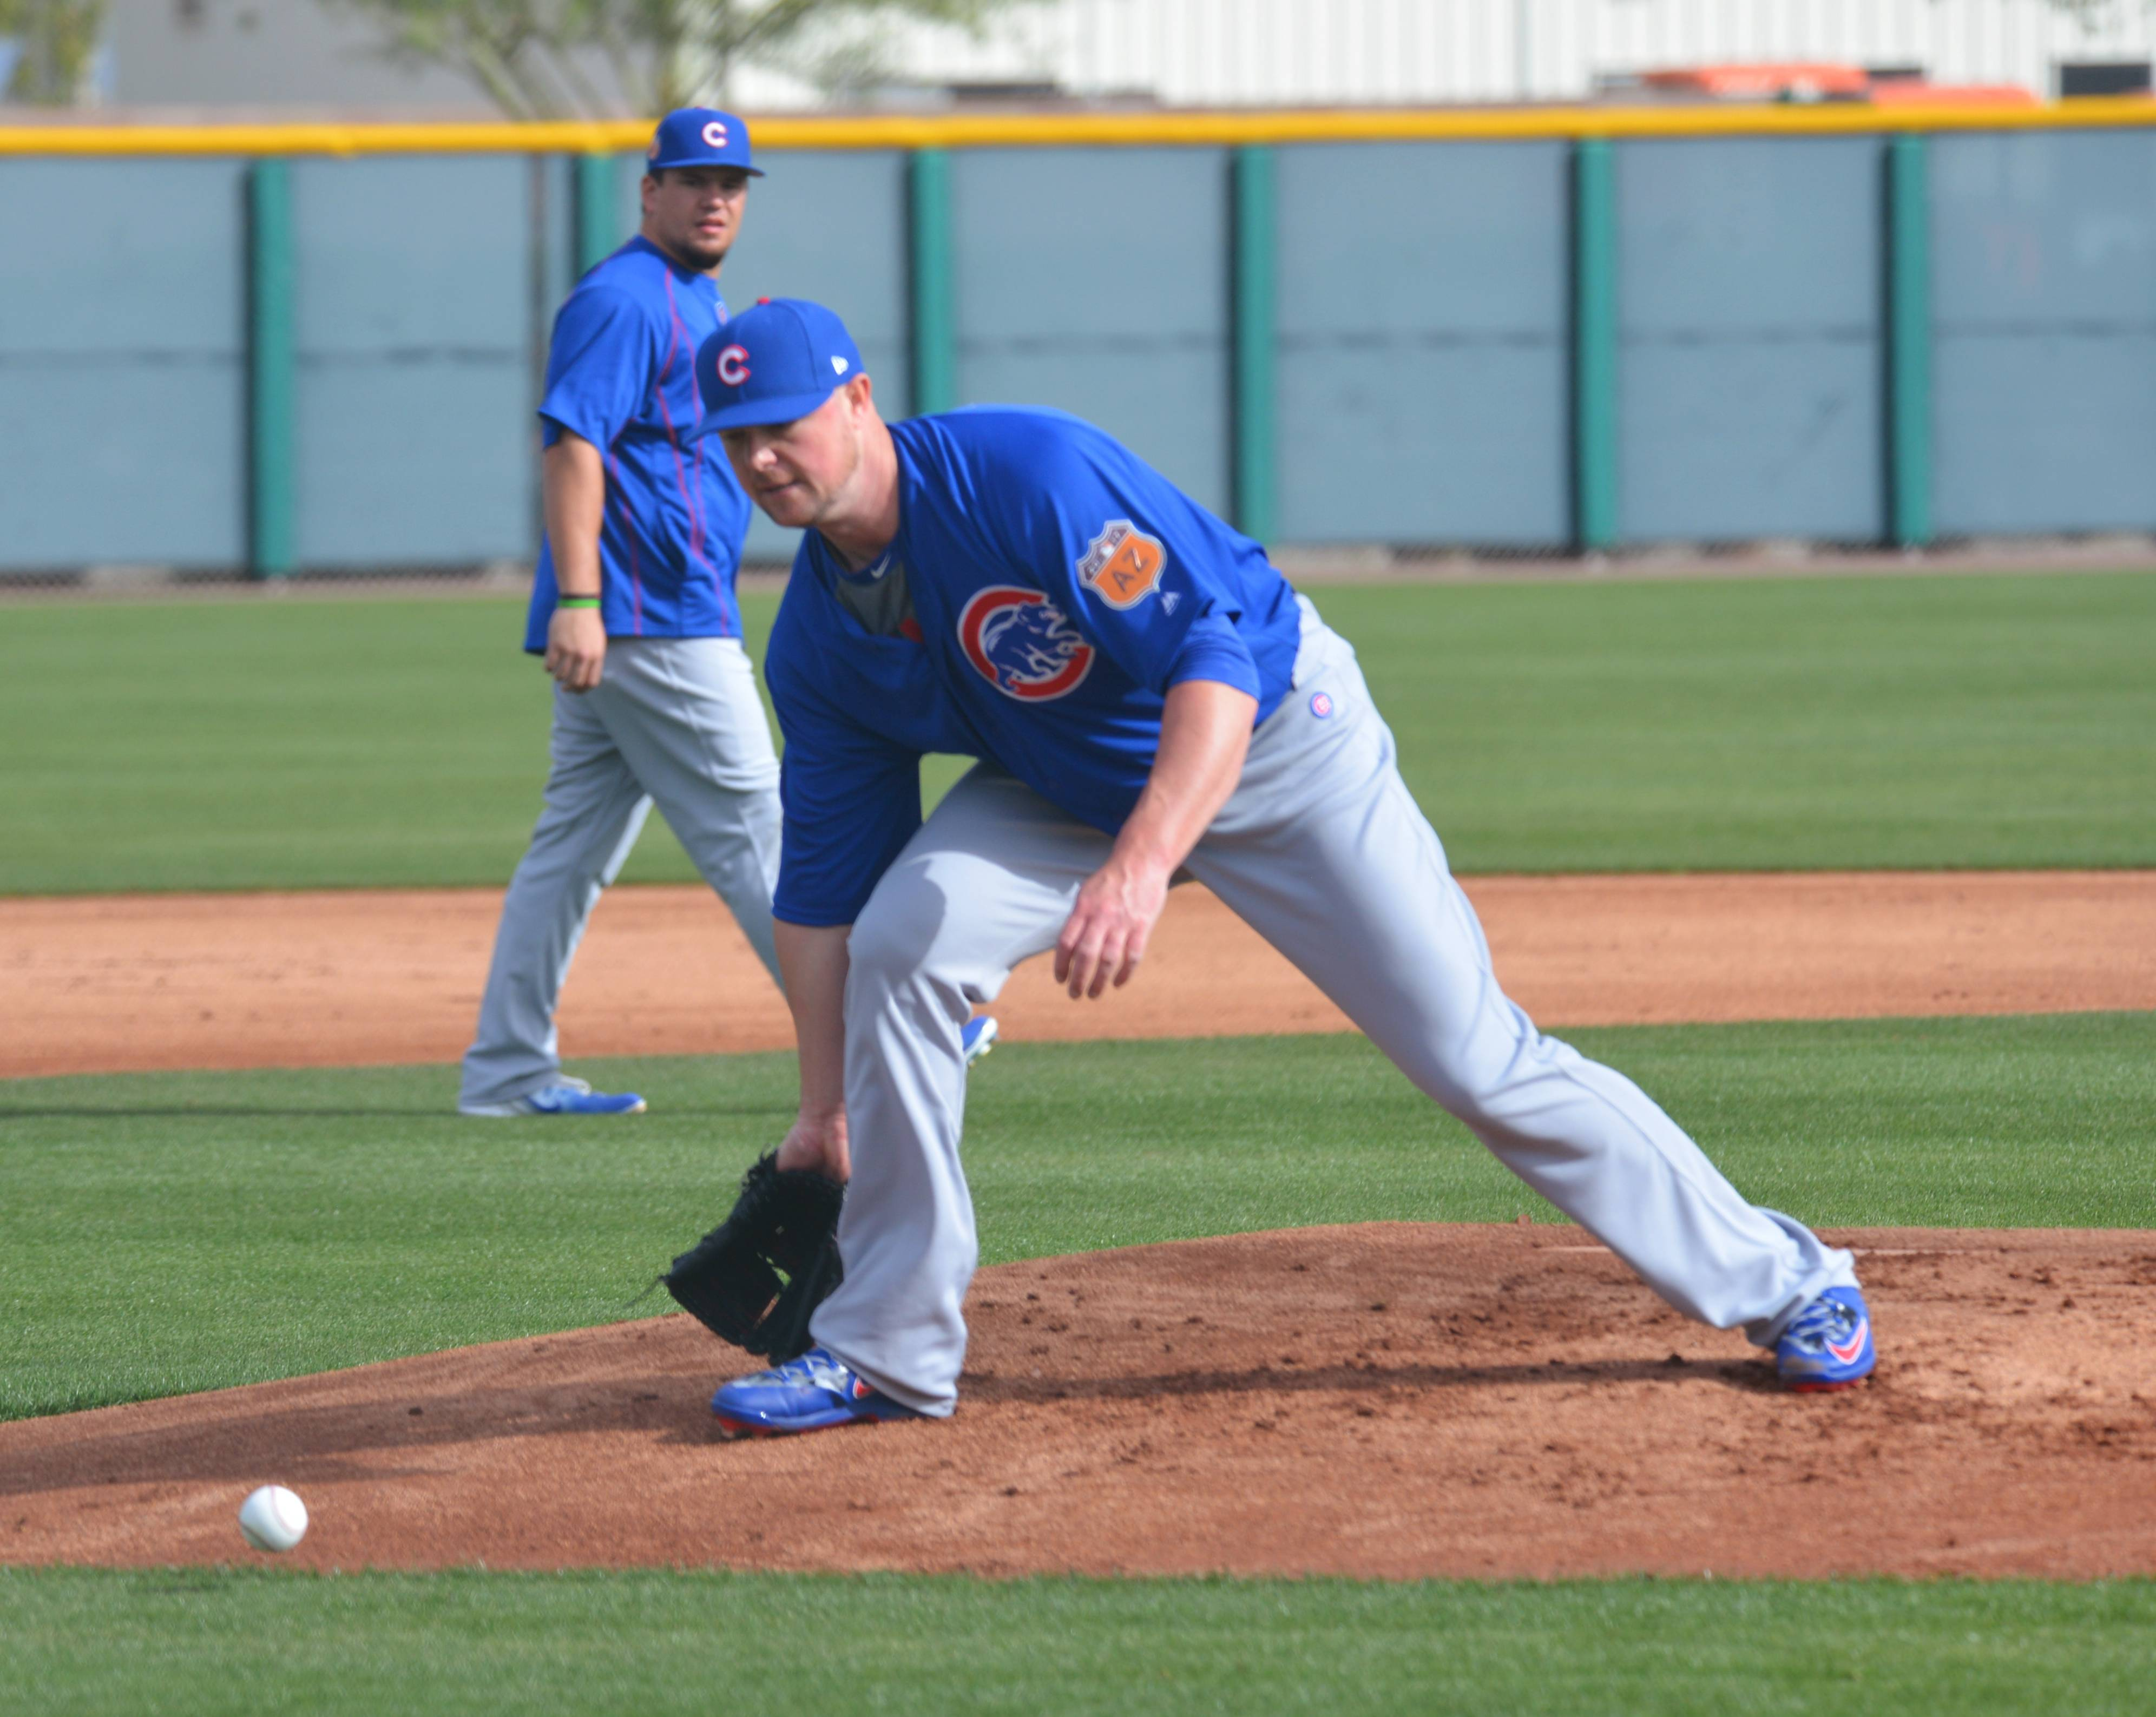 Jon Lester spent some time Friday in Cubs camp working on his fielding.